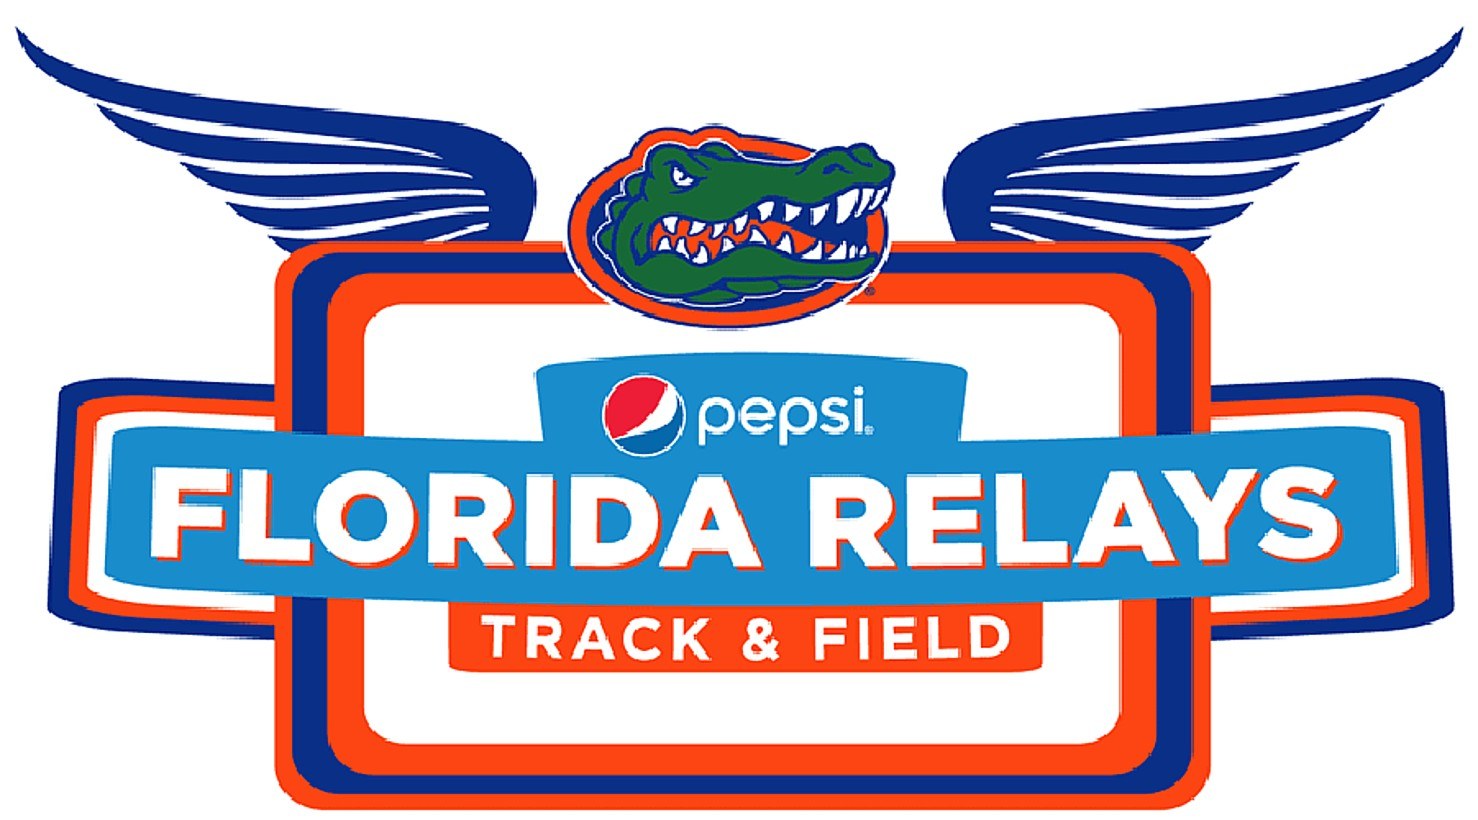 Florida-Relays-2021-live-stream-live-results